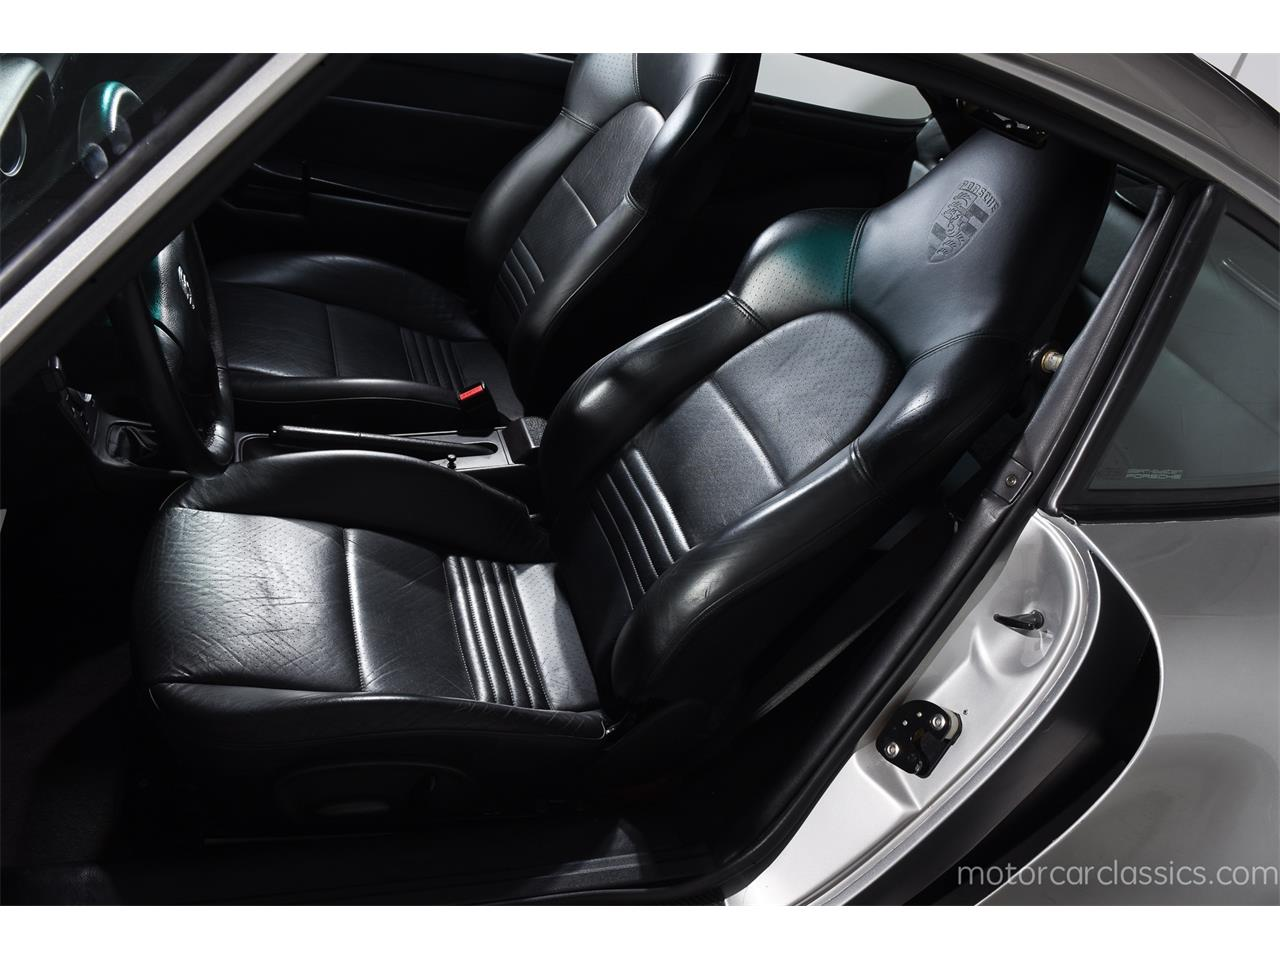 Large Picture of 1996 Porsche 911 Turbo located in New York - $69,900.00 - MBOA